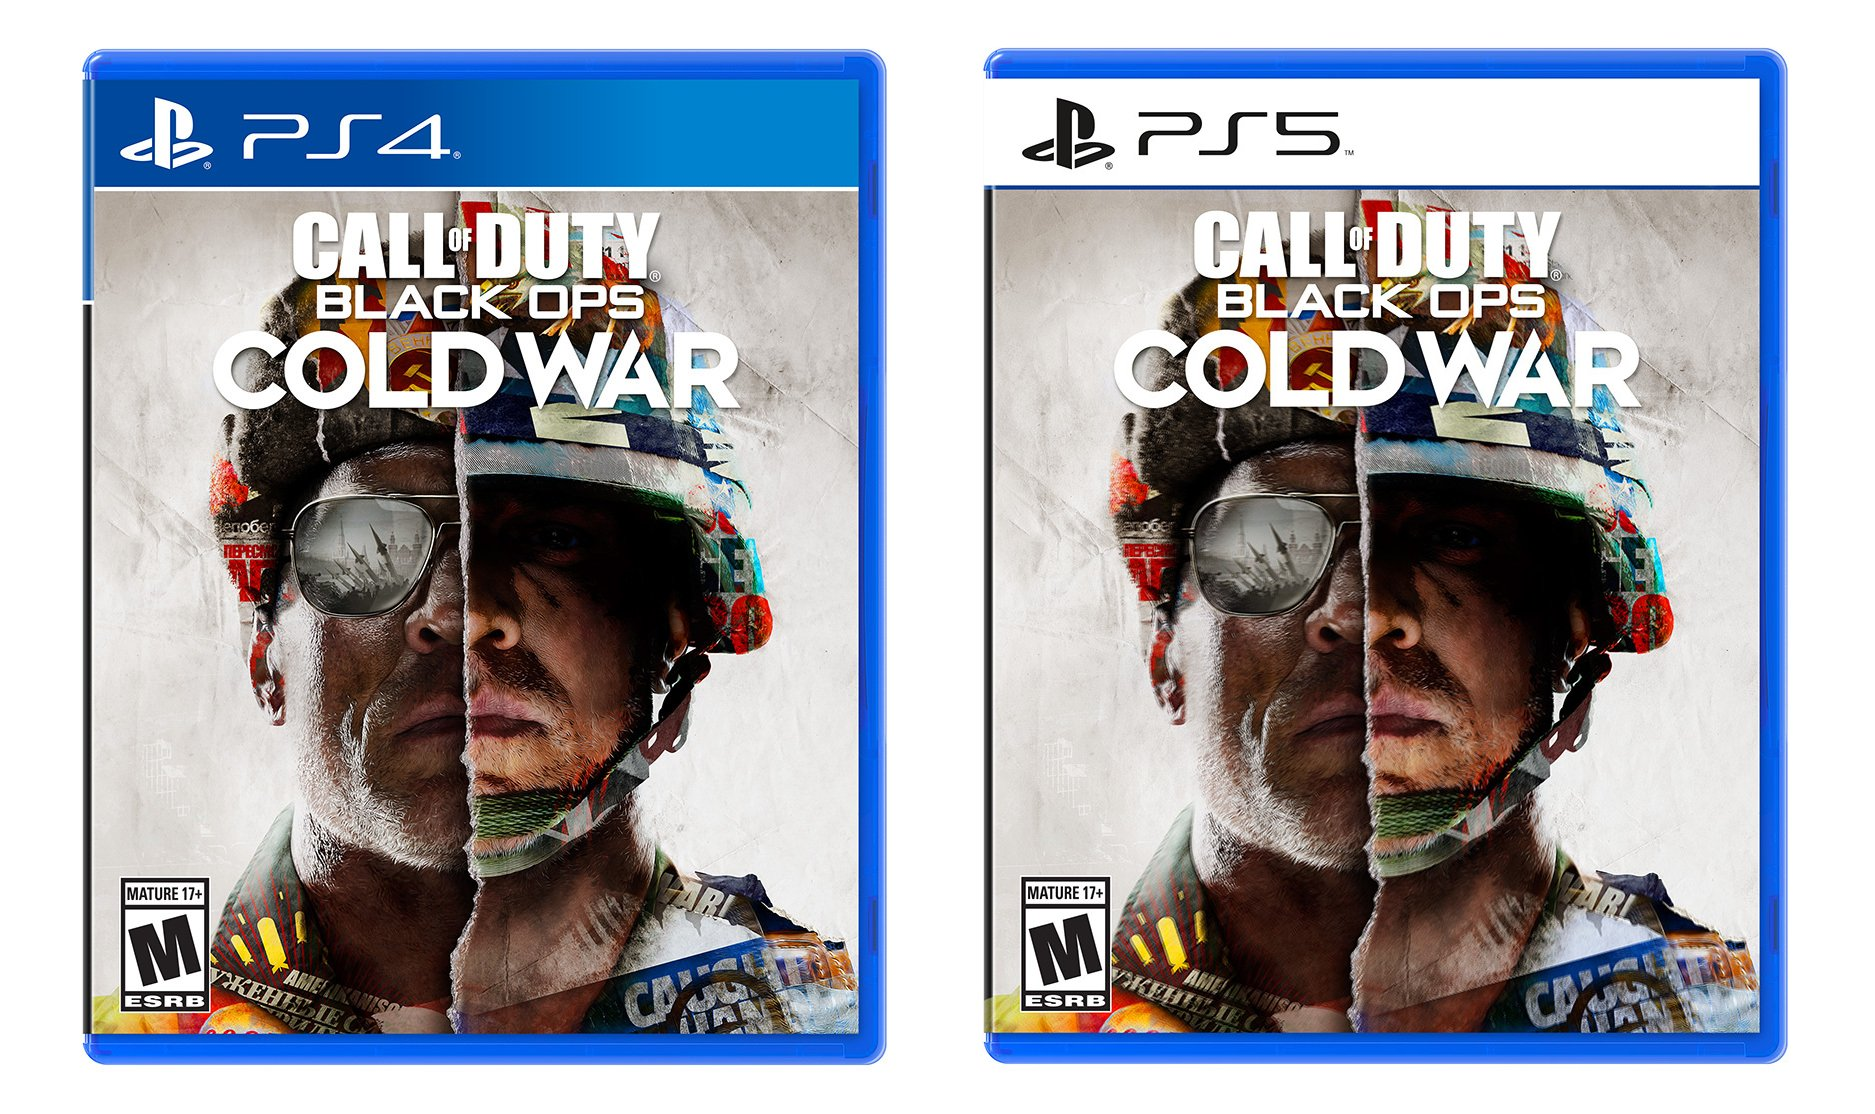 call of duty black ops cold war next-gen game price increase 70